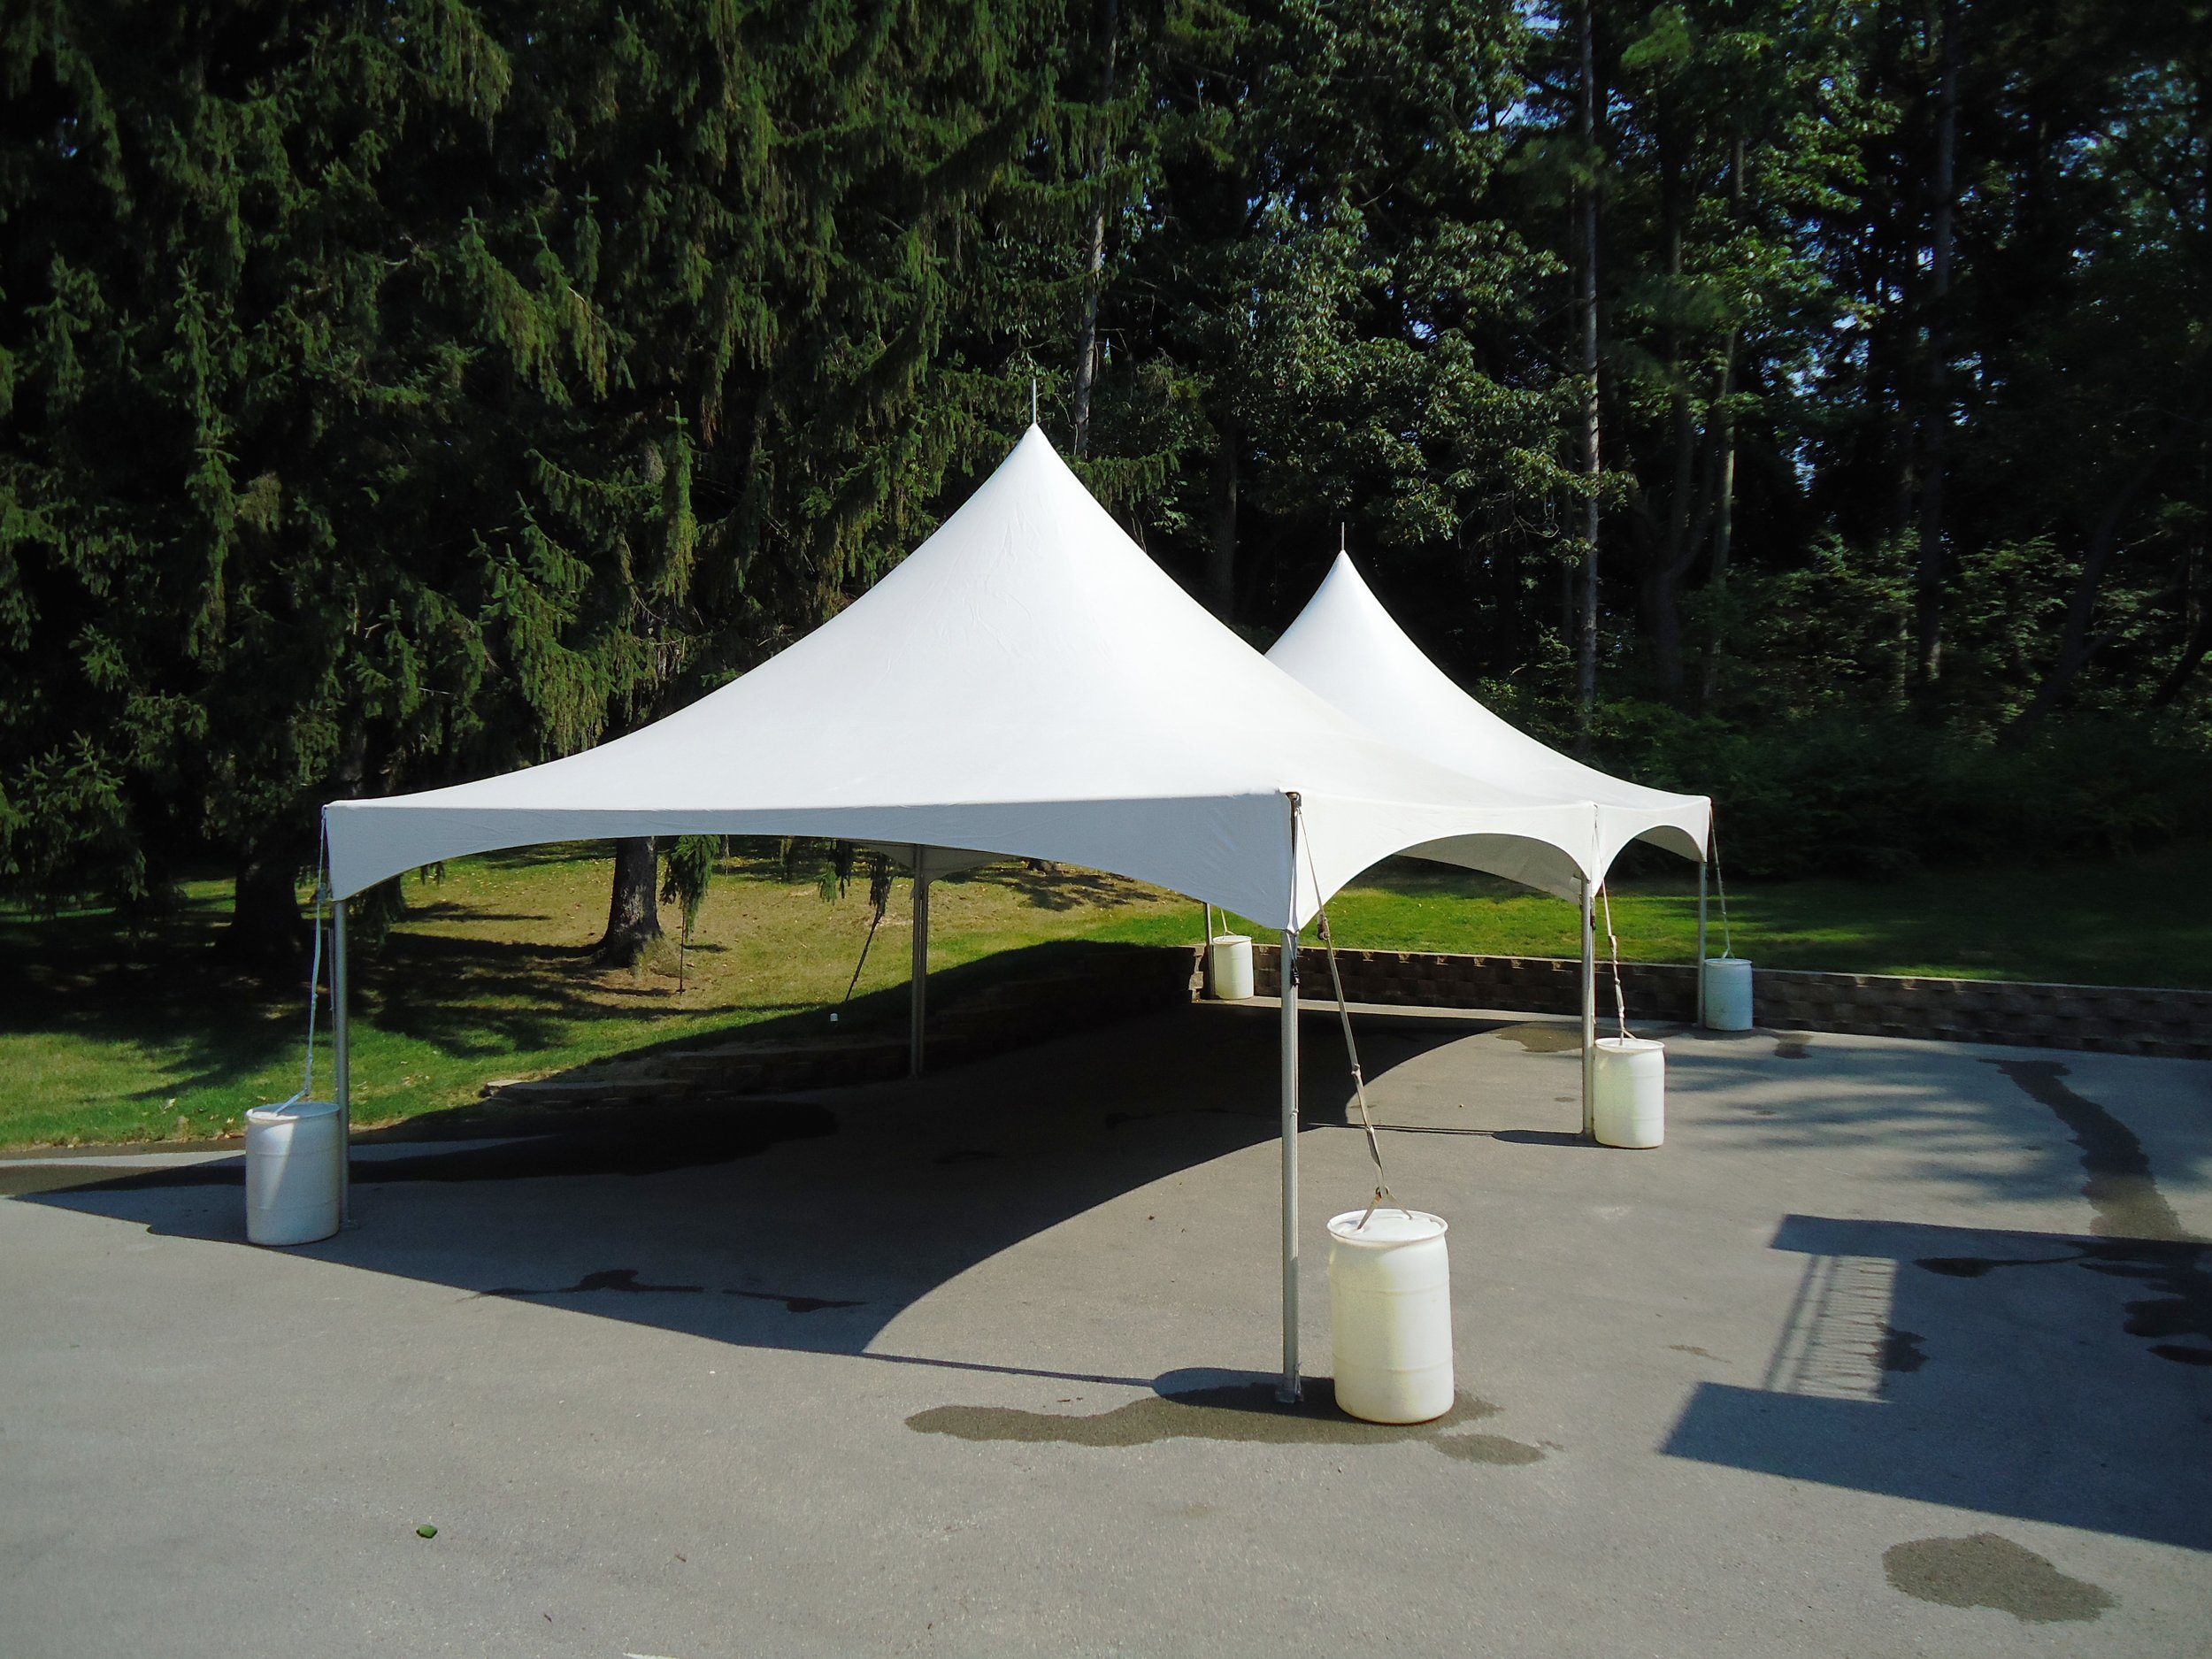 20' x 40' High Peak Frame Tent